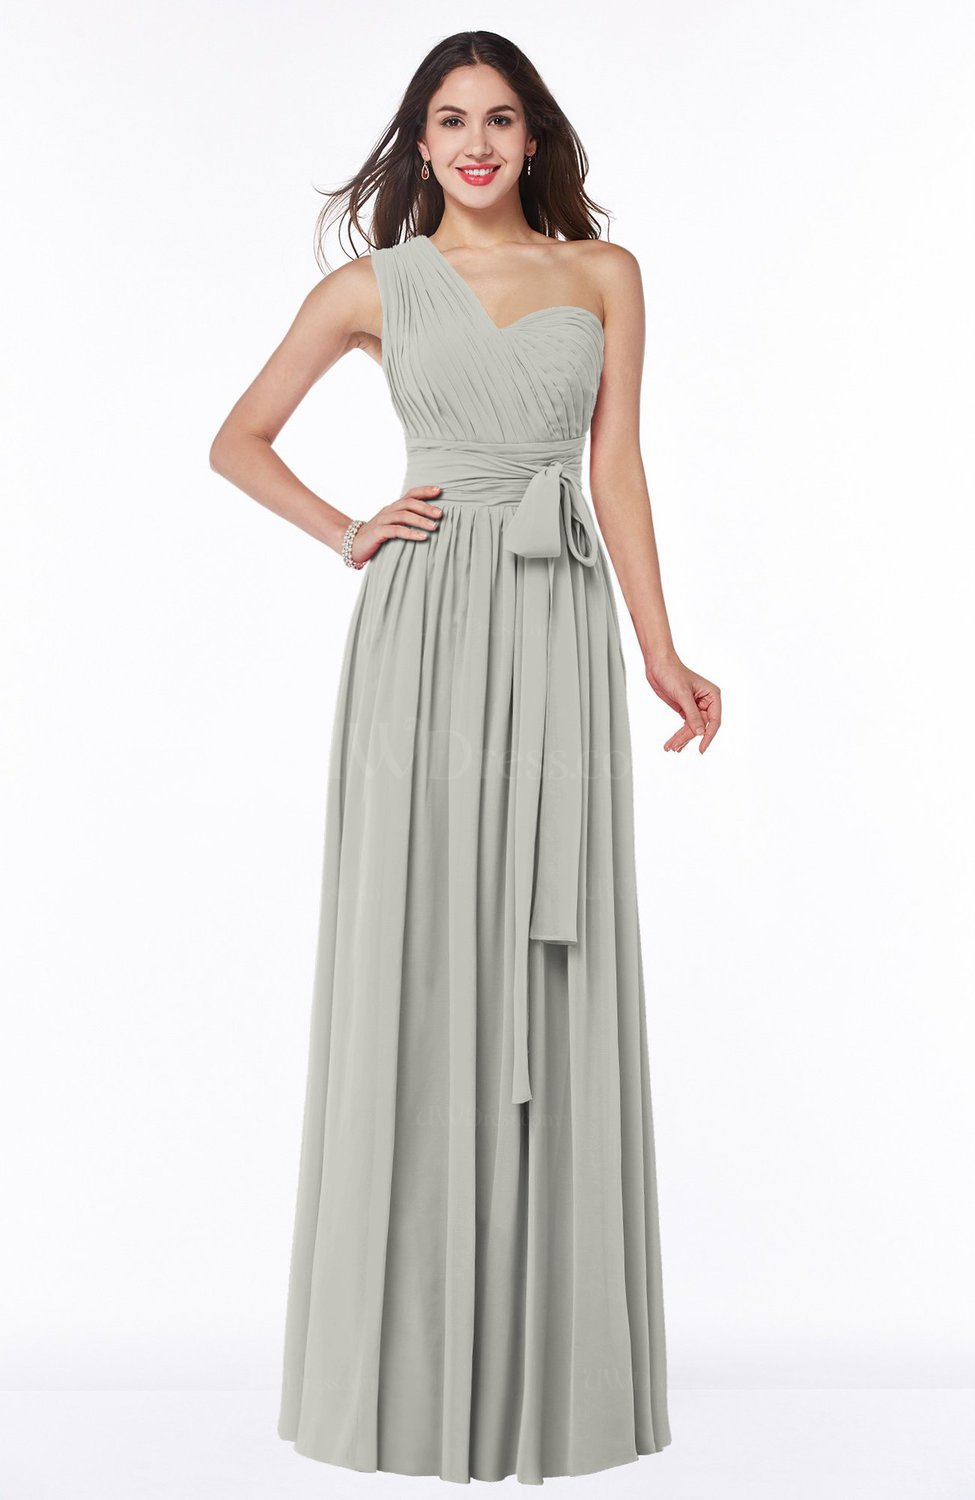 Bridesmaid Dresses under 100 - UWDress.com